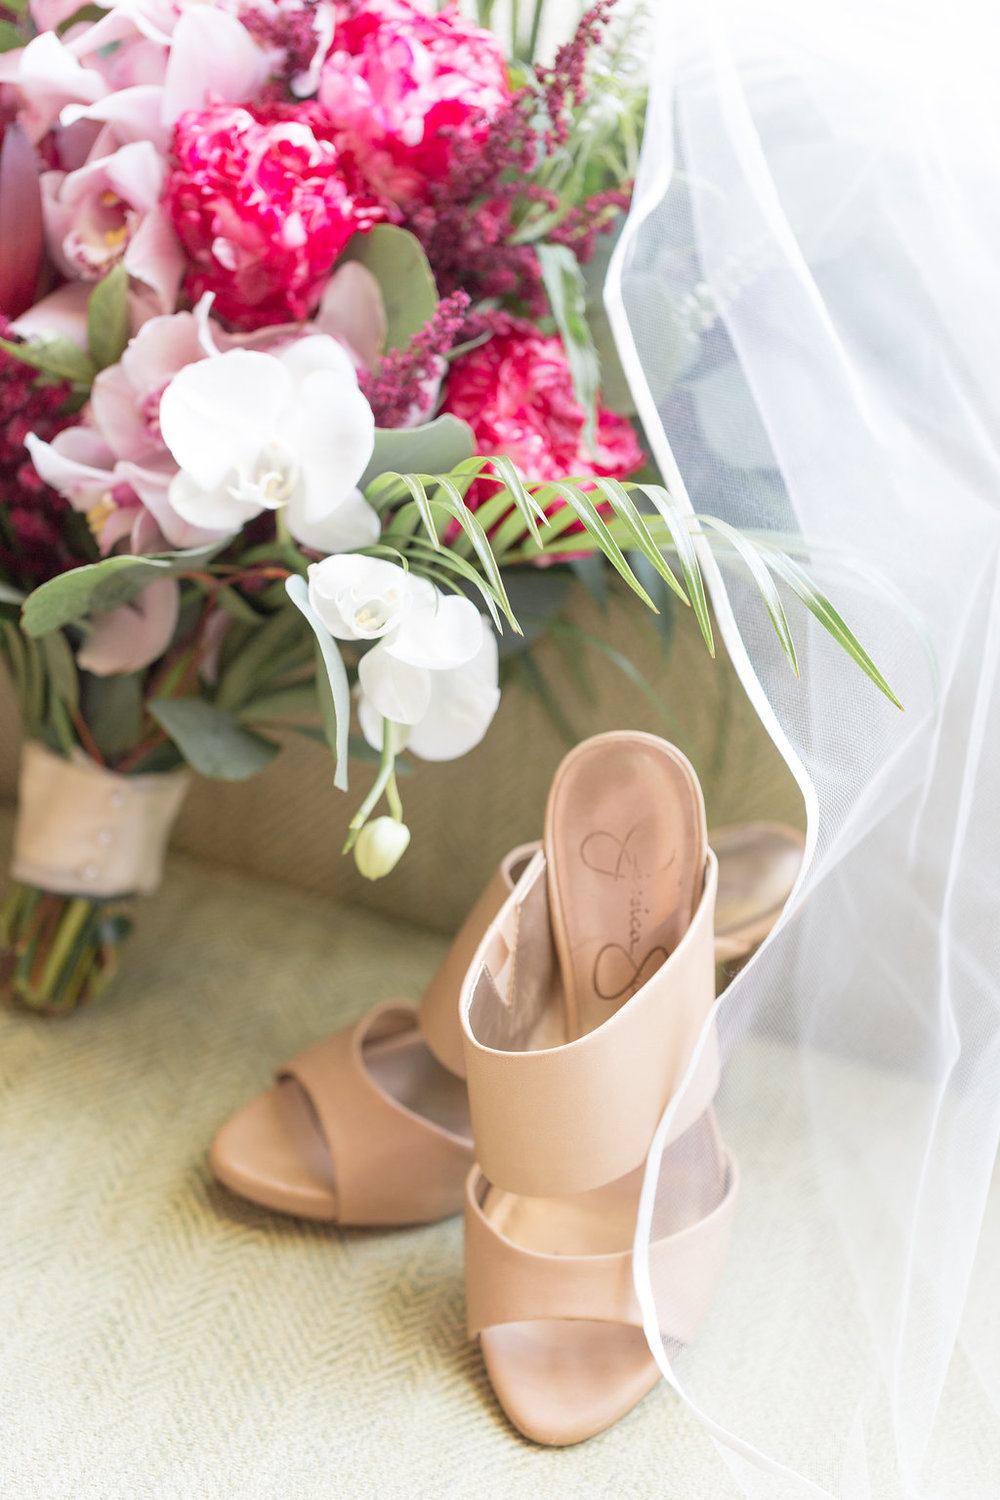 Gorgeous Nude Wedding Heels - Musgrove Plantation Georgia Wedding Venue